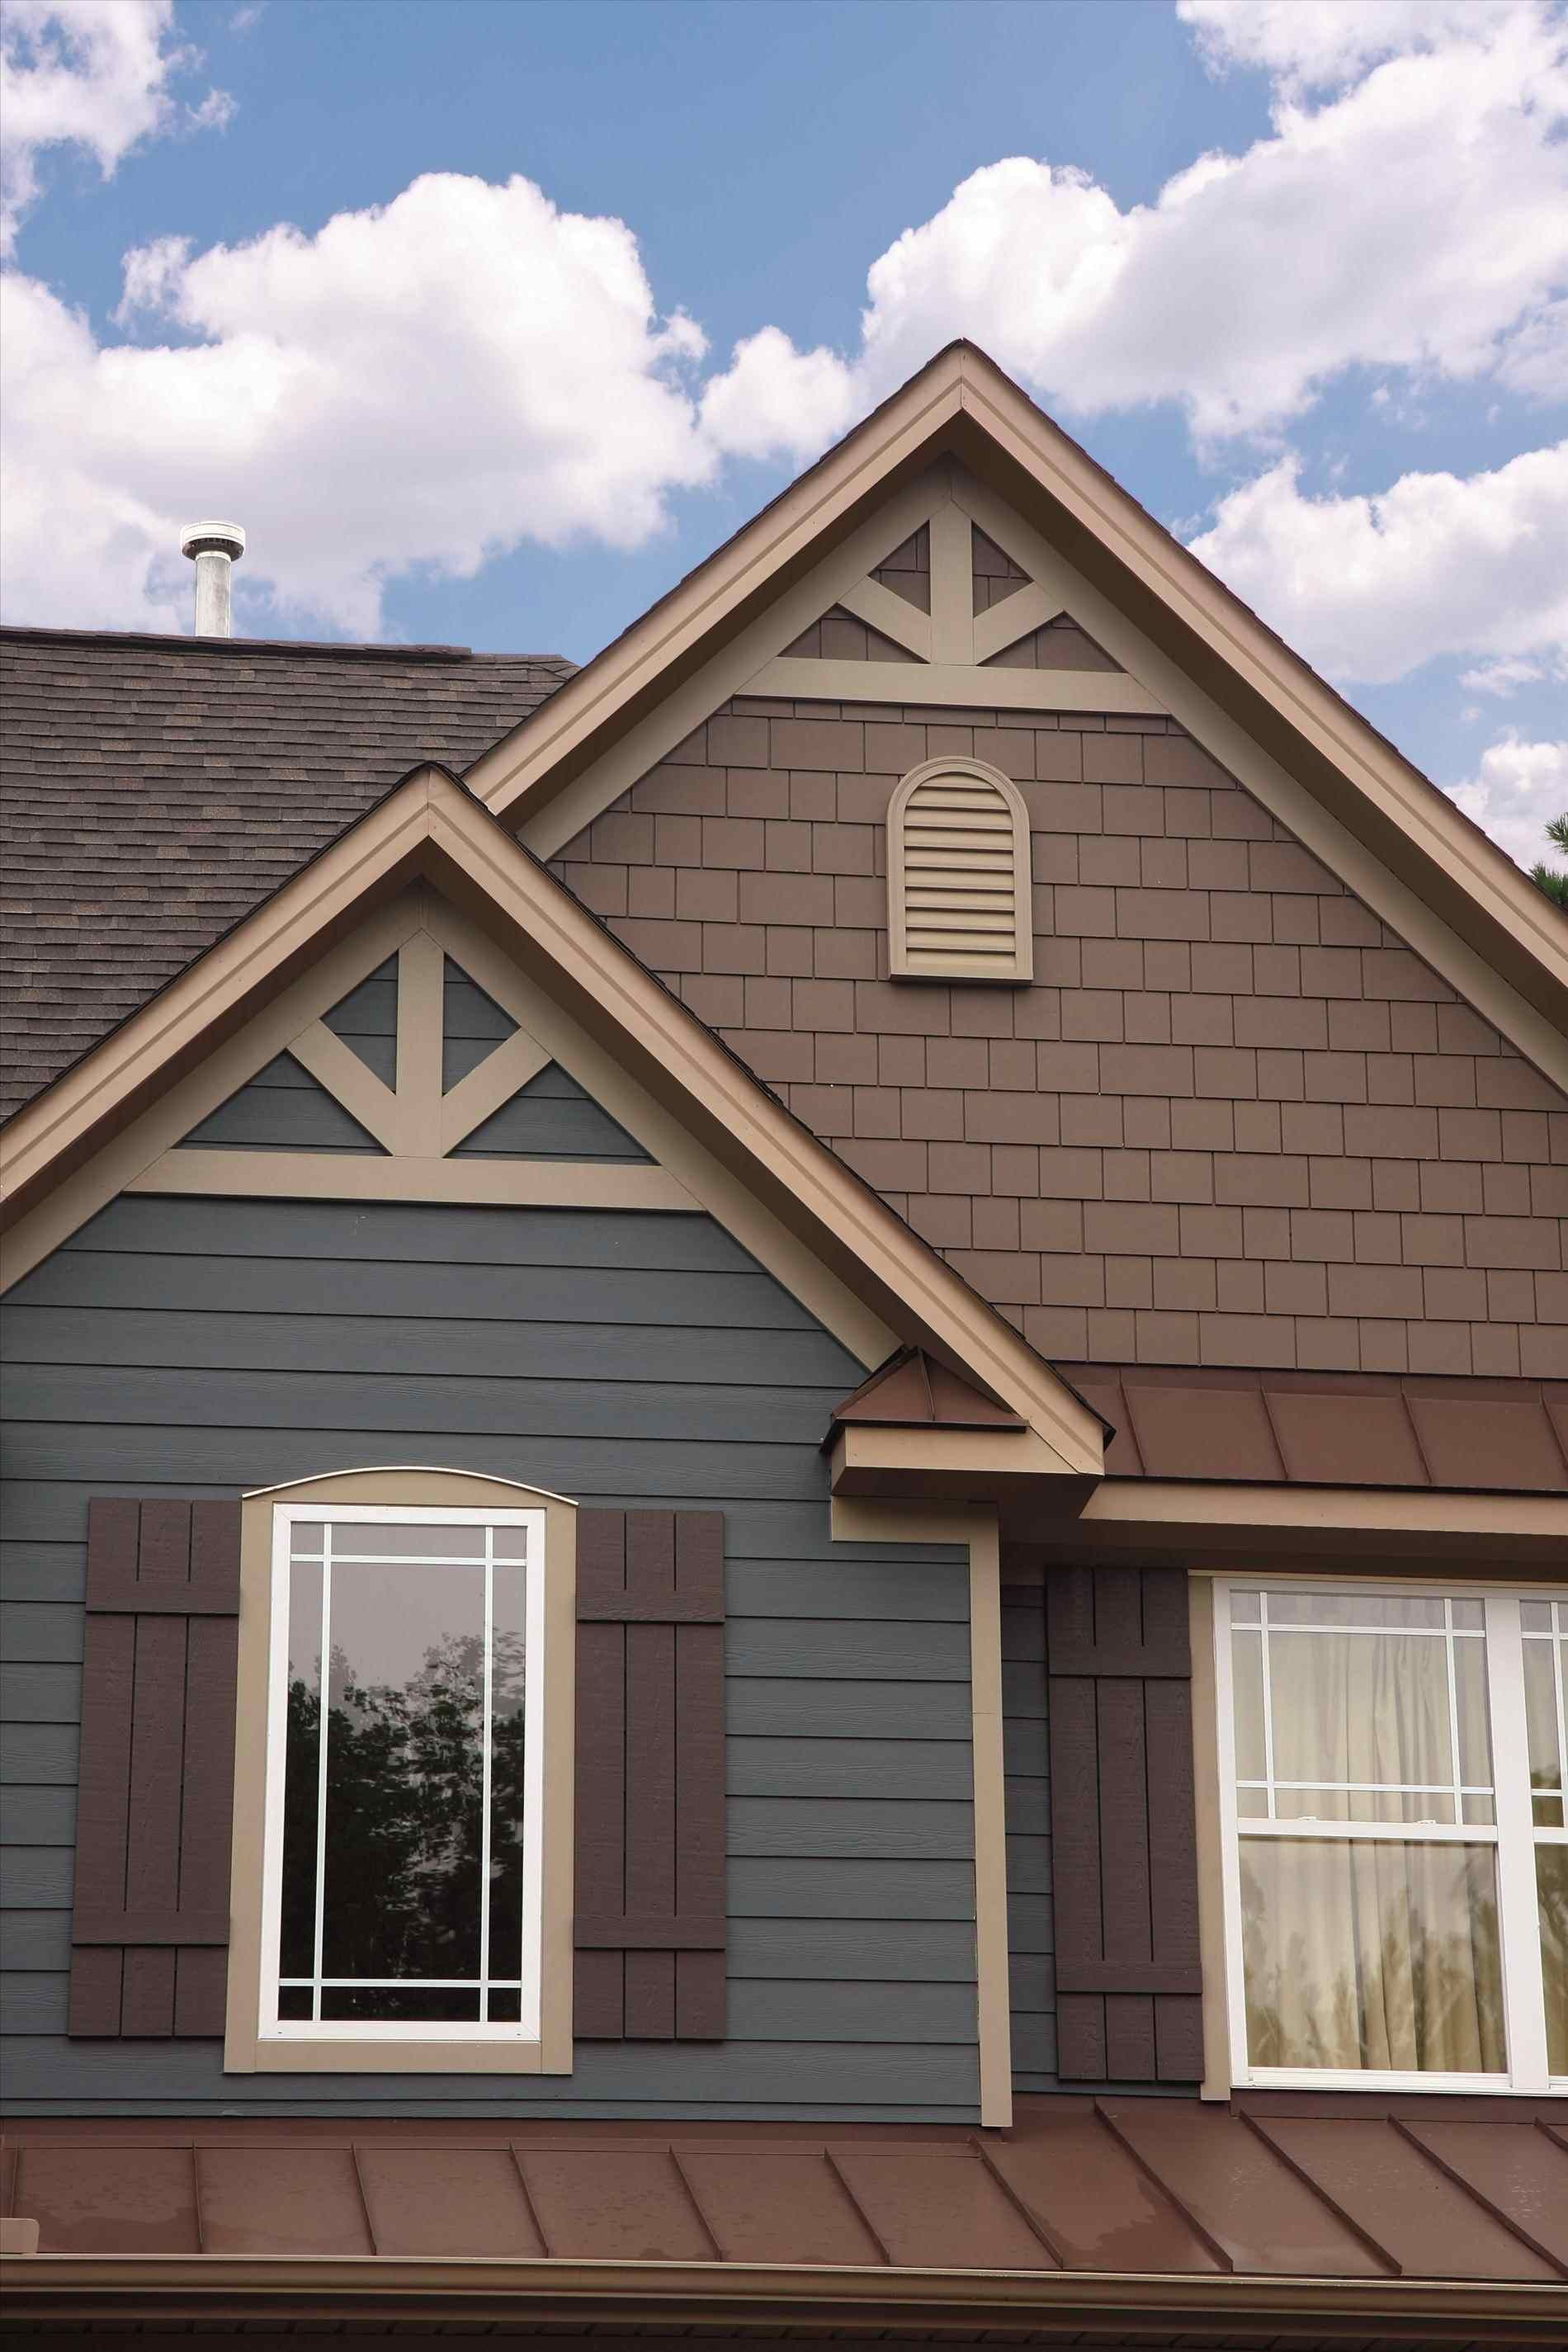 Tan Trim On Dark Blue To Complement The Tan Brick Exterior